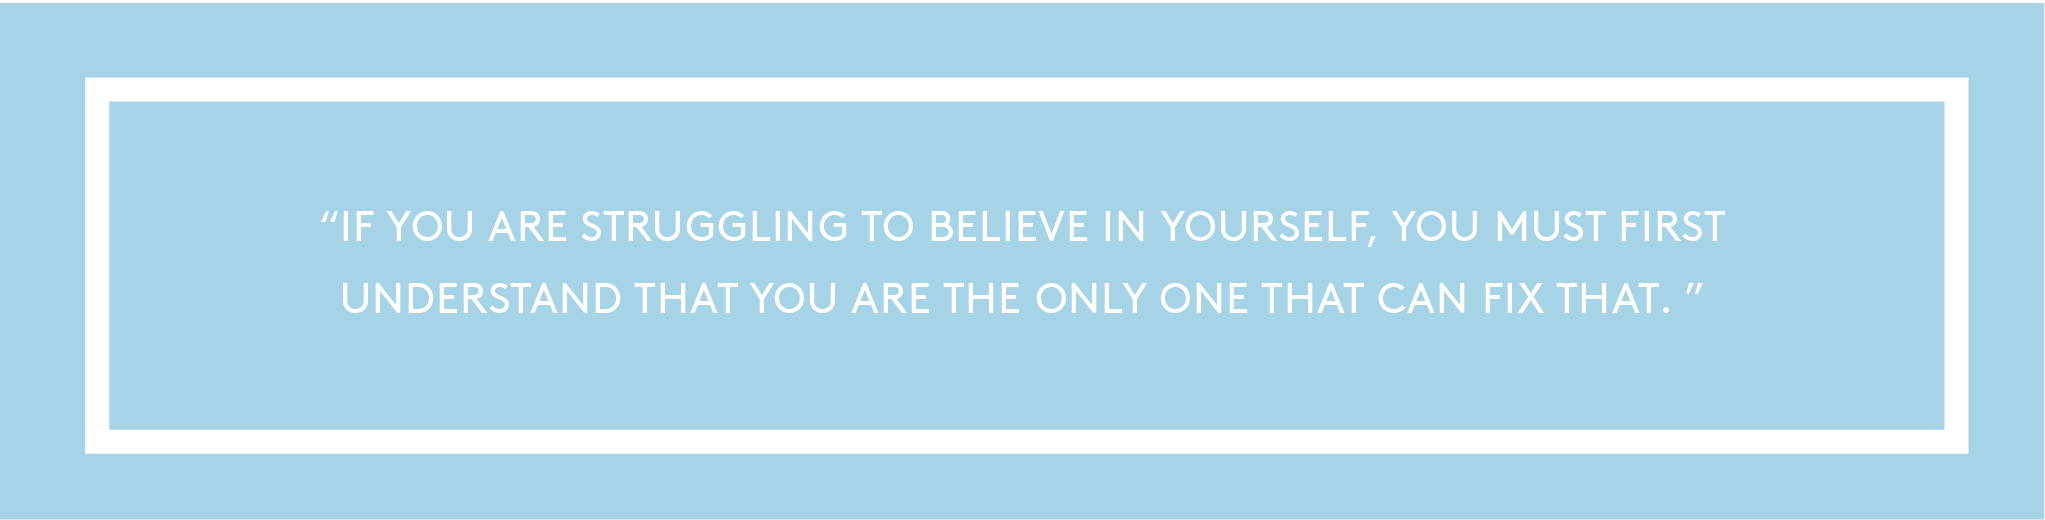 ''If you are struggling to believe in yourself, you must first understand that you are the only one that can fix that.''